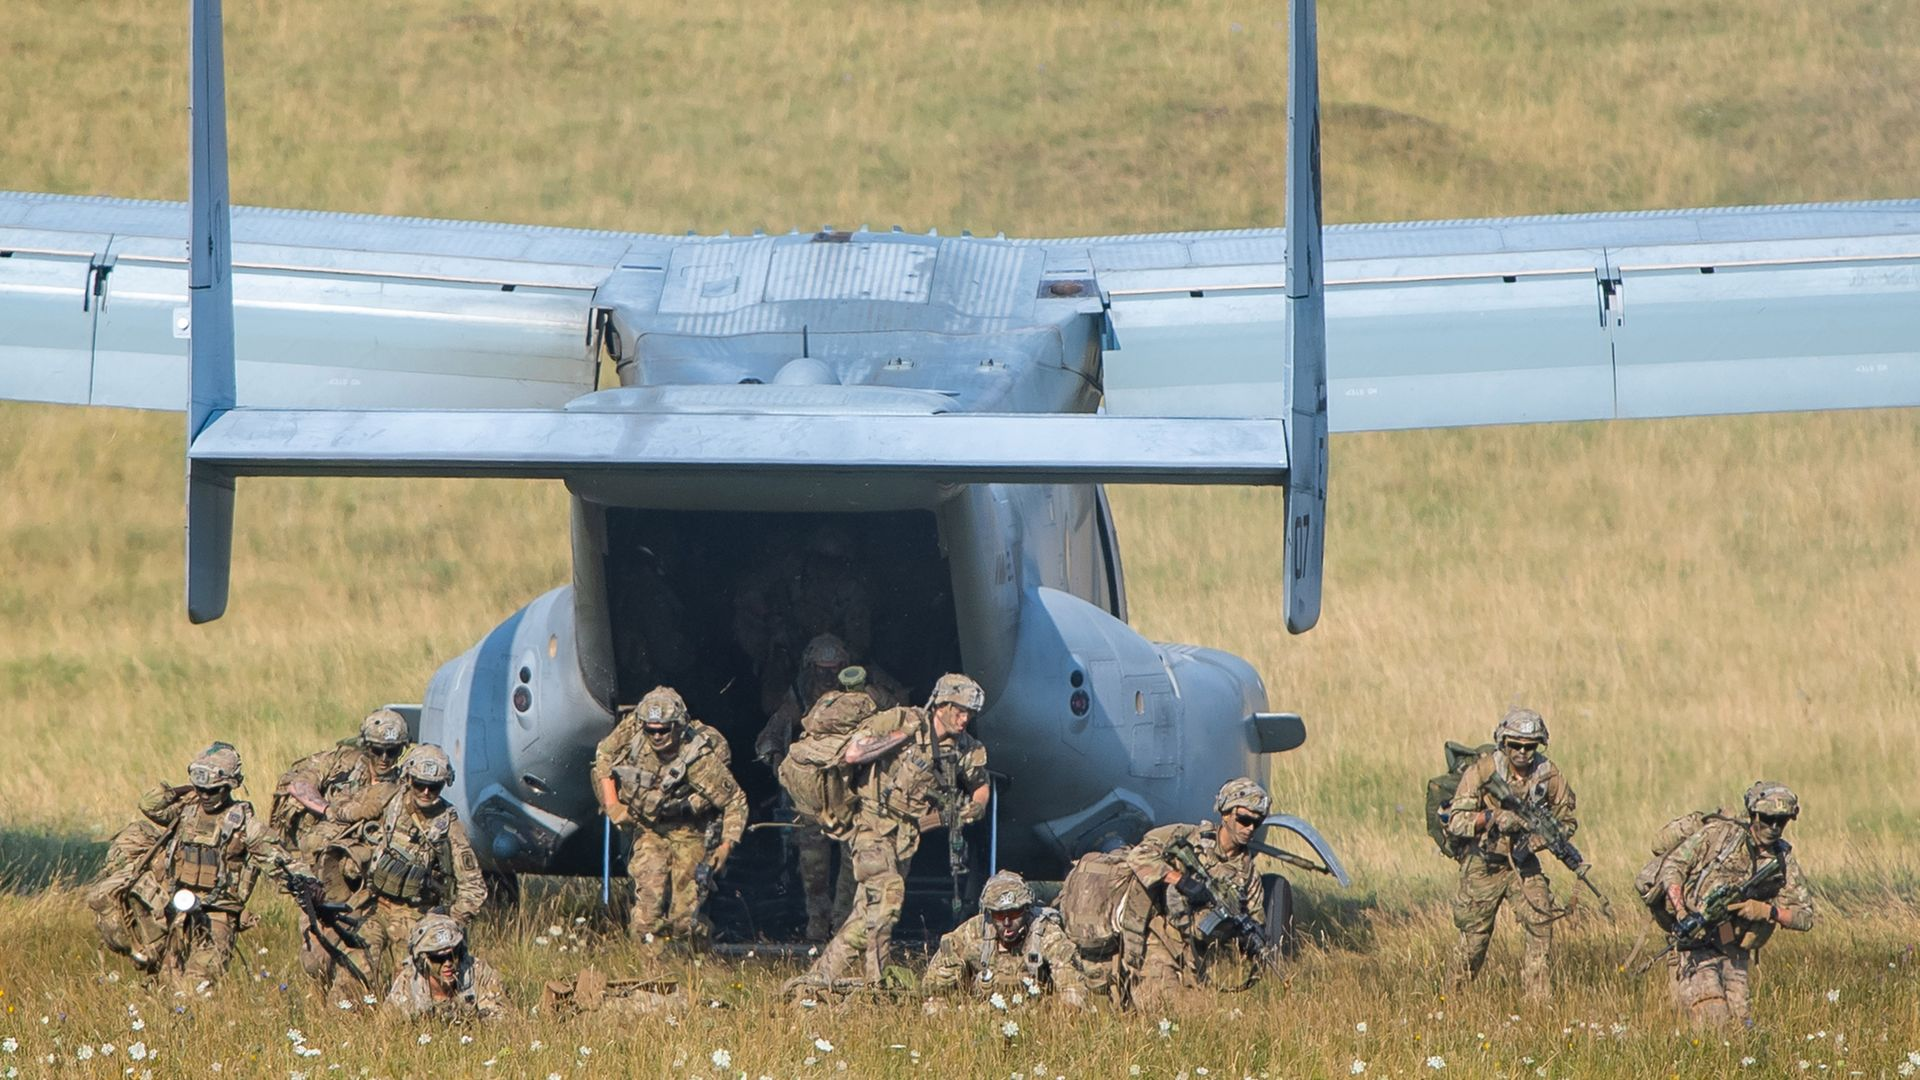 Troops of the U.S. 173rd Airborne Brigade during a training exercise in 2020 - Credit: Photo by Lennart Preiss/Getty Images